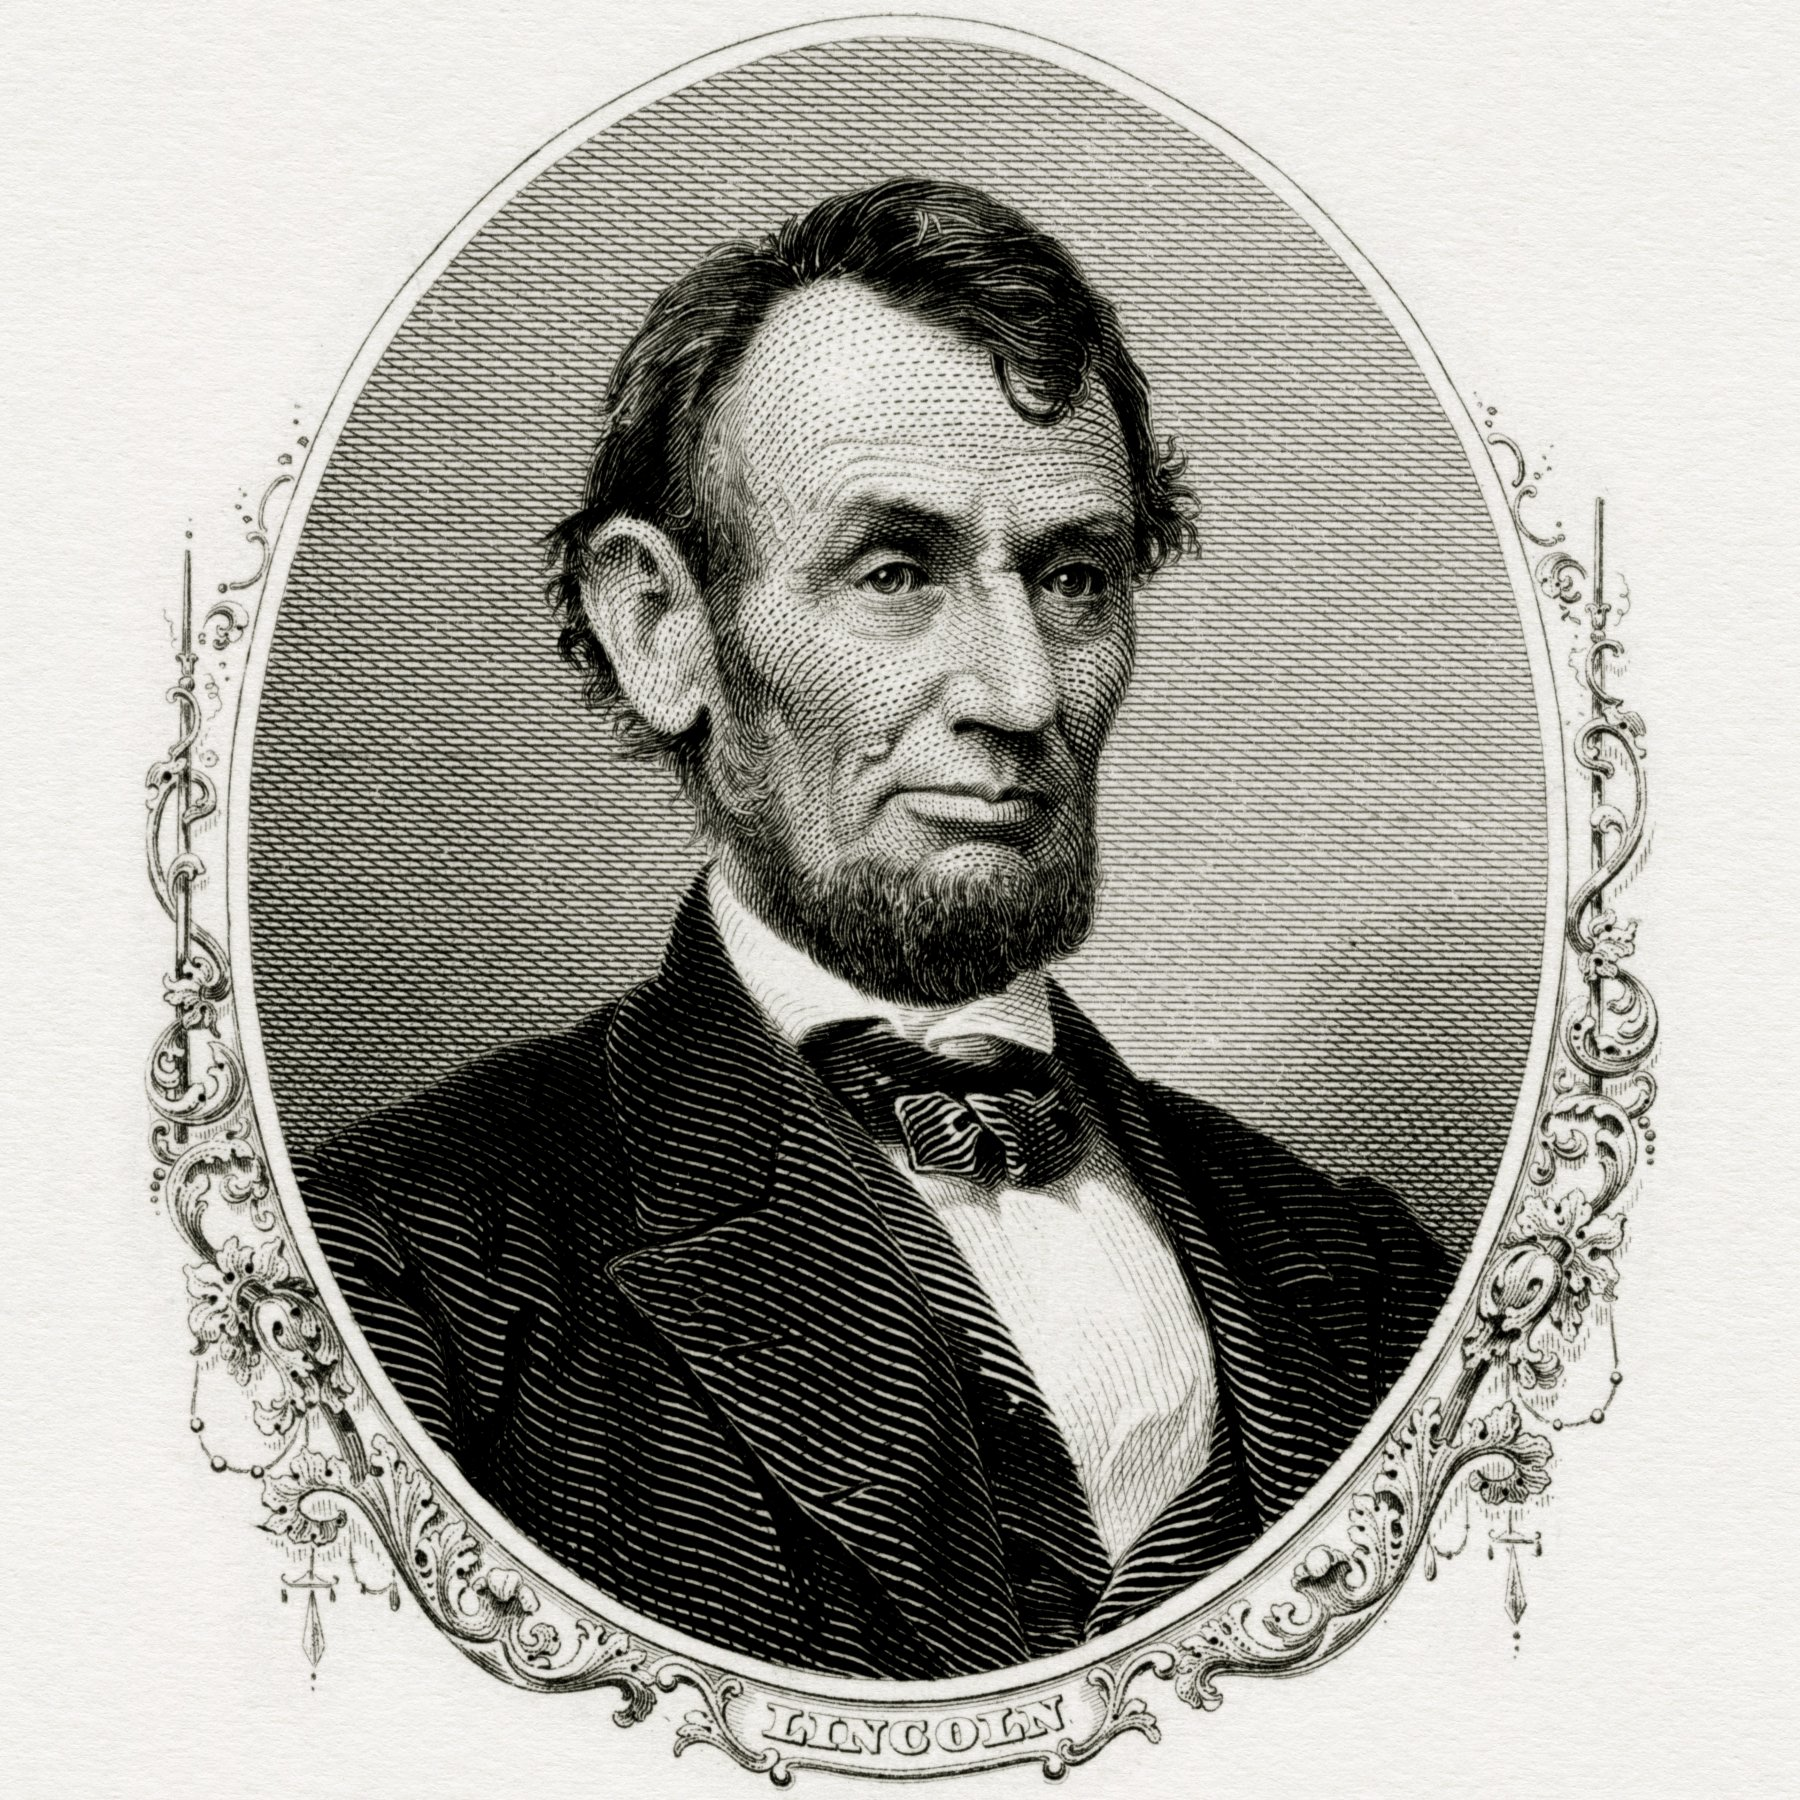 A biography of abraham lincoln the 16th president of the united states